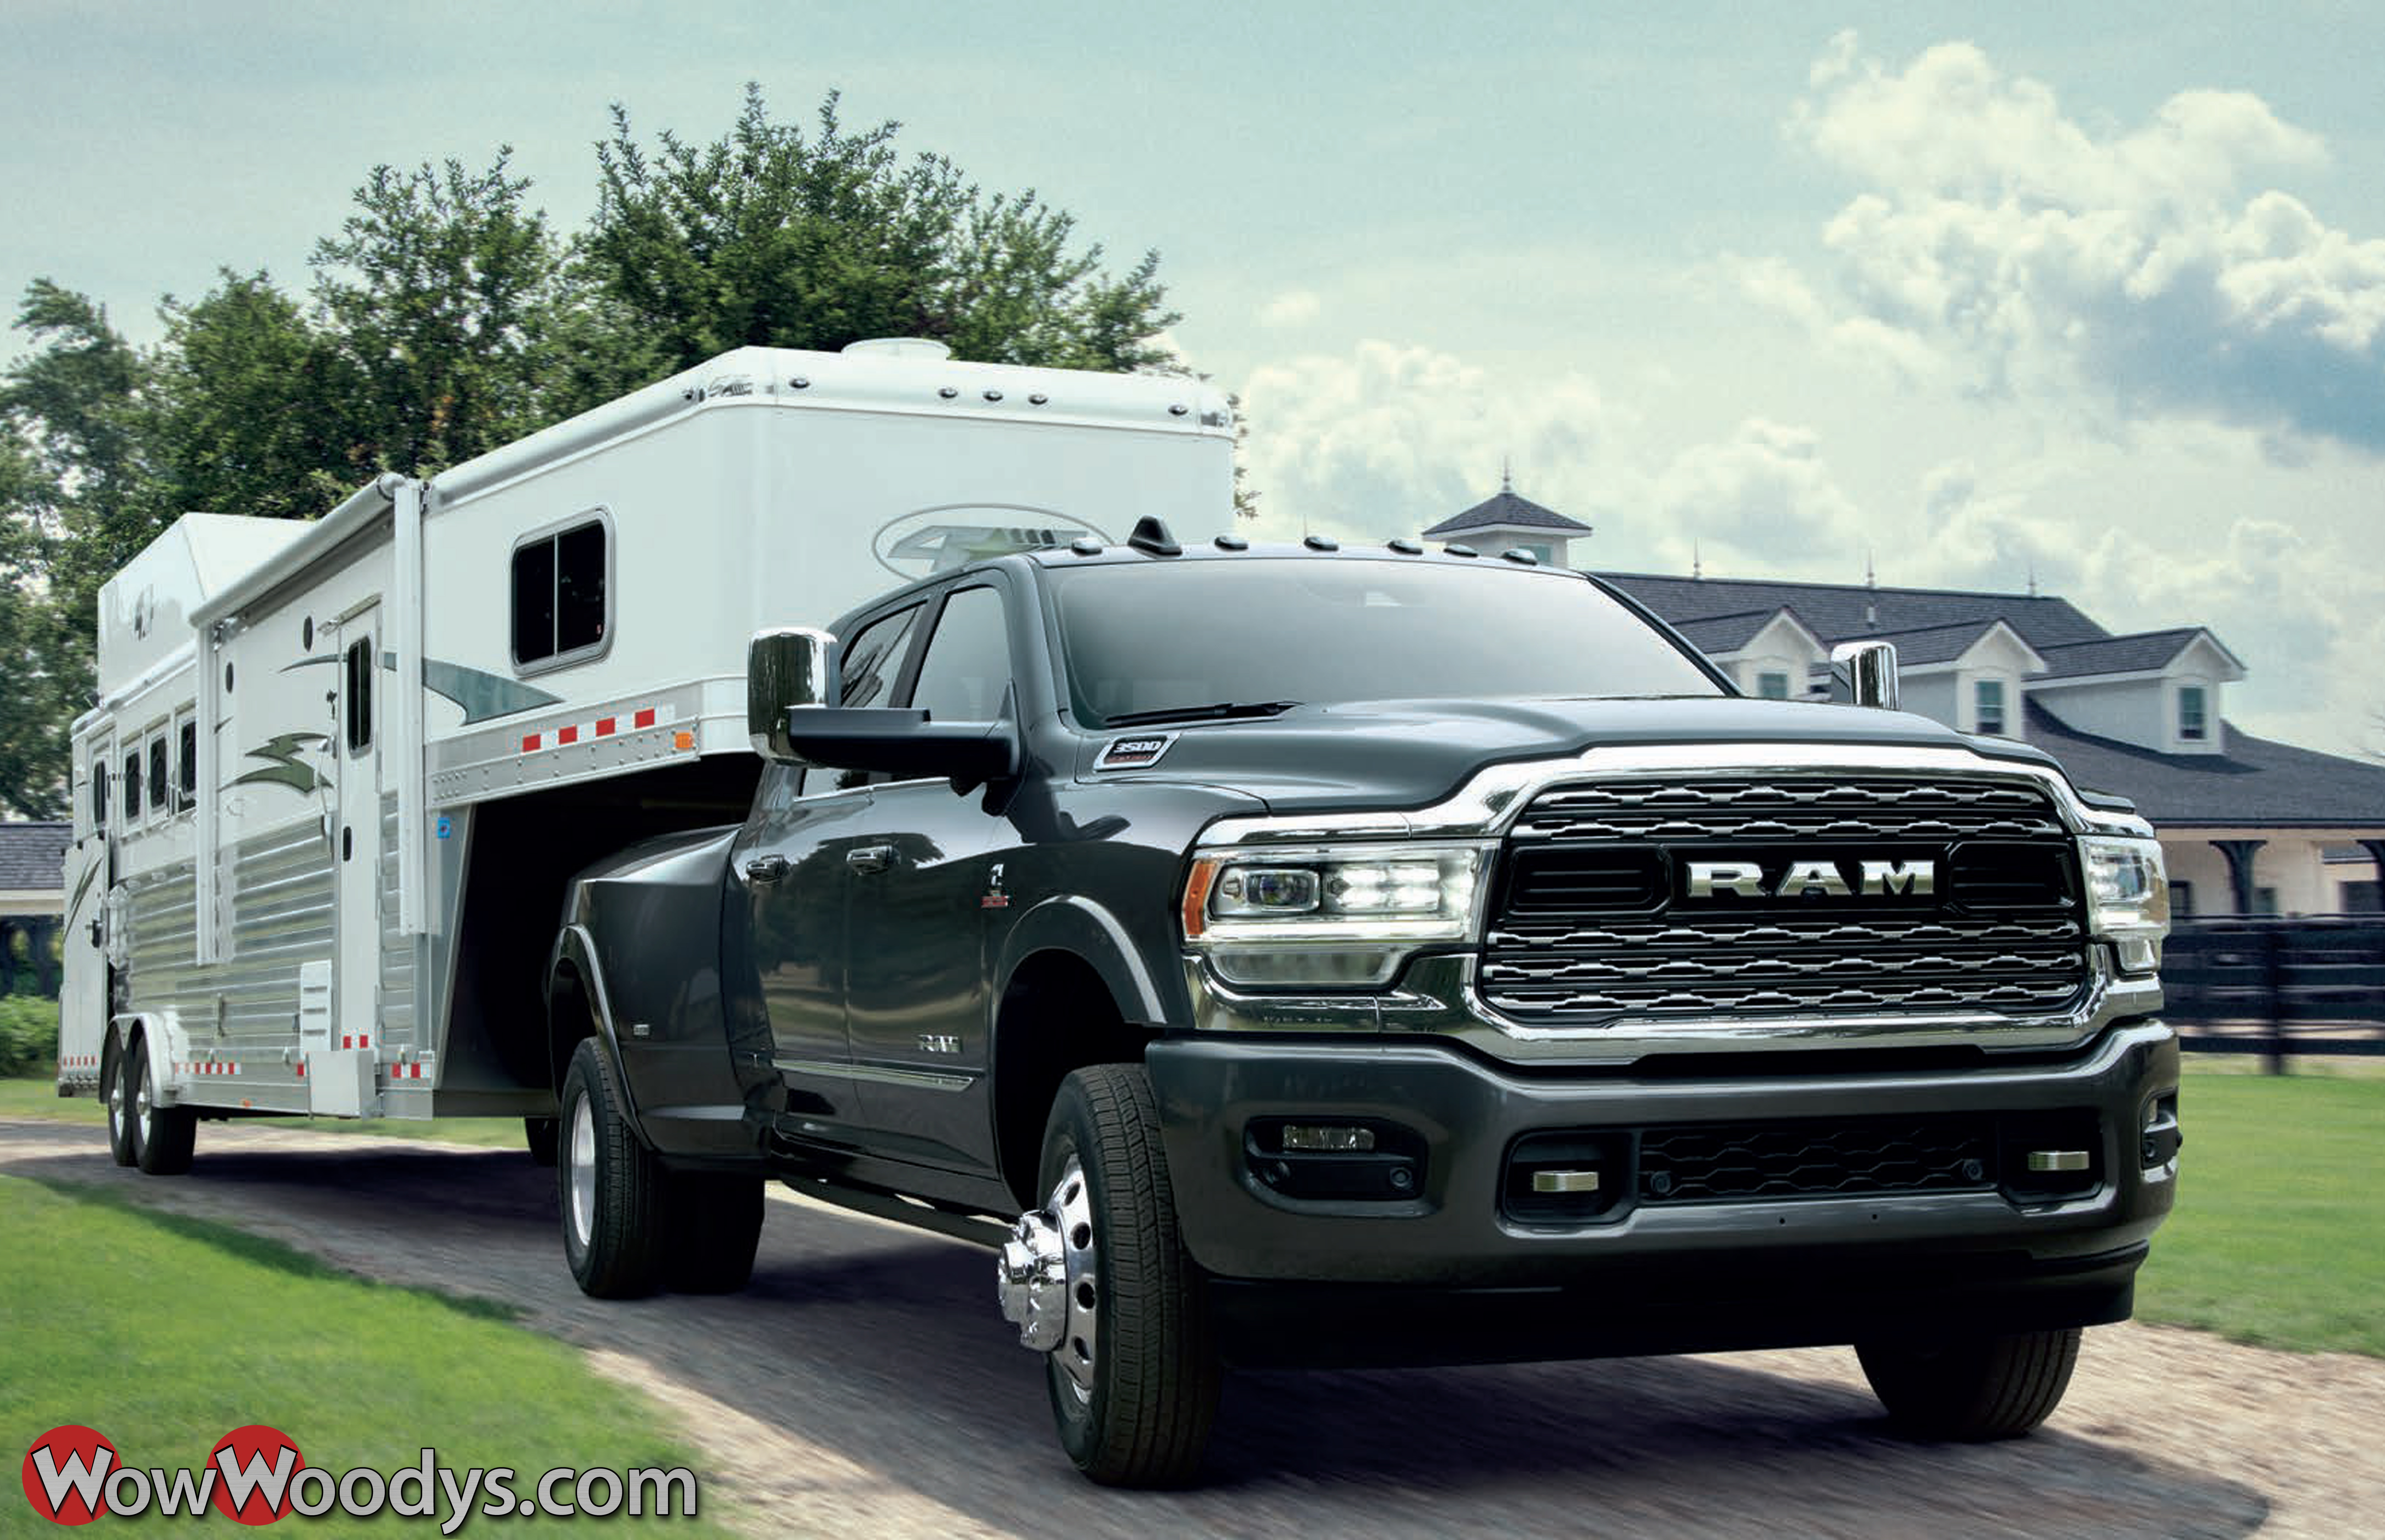 Best Wow Class 2019 2019 New Ram 2500 Trim Levels in Chilicothe, near Kansas City, MO